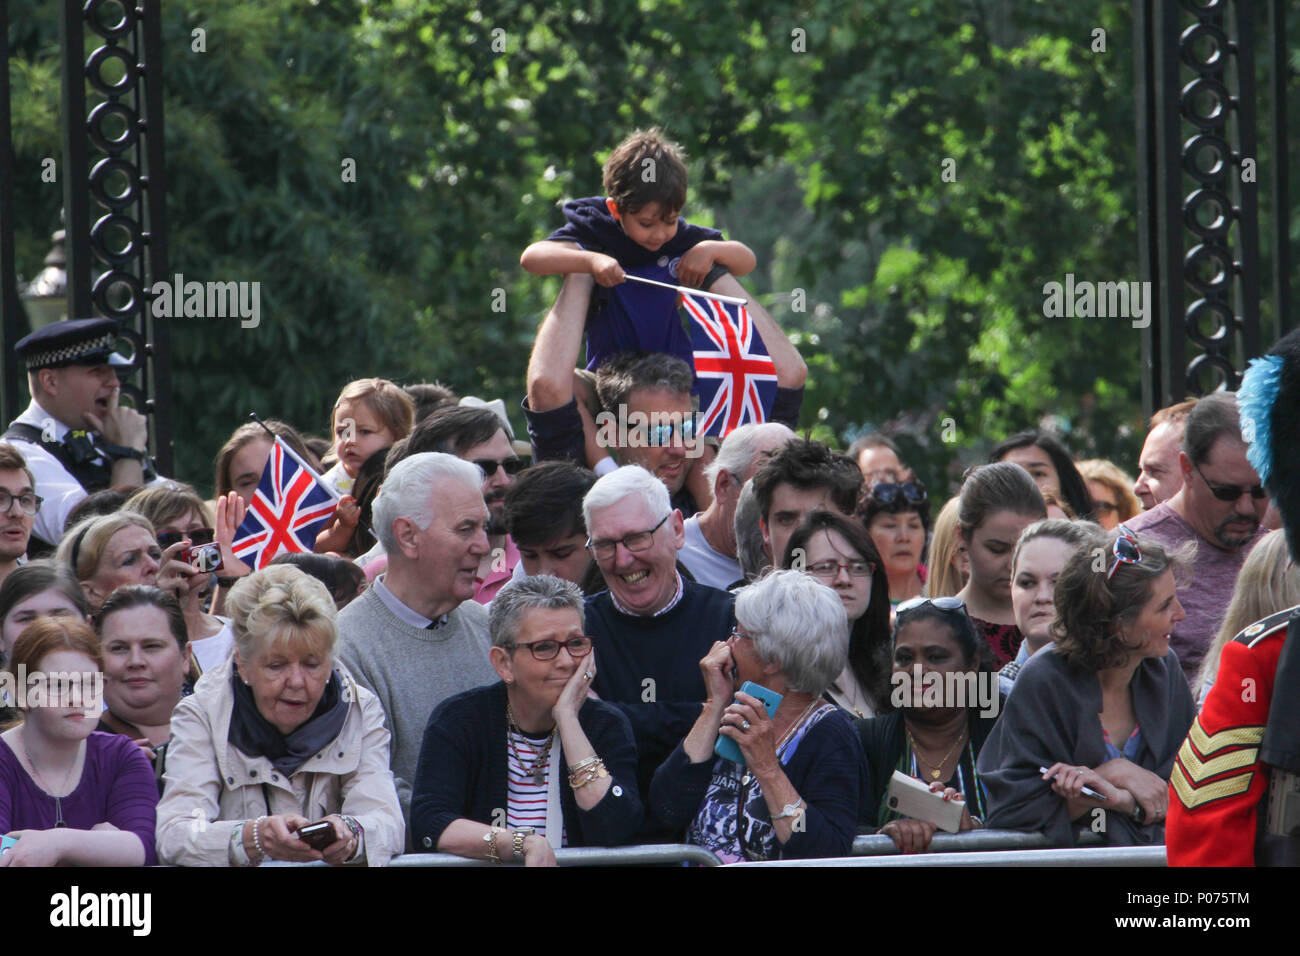 London, UK 9 June 2018: Members of the public seen along the Mall awaiting the  Royal Family on the way to the Horse Guards Parade Ground on 9 June 2018. Over 1400 parading soldiers, 200 horses and 400 musicians come together each June in a great display of military precision, horsemanship and fanfare to mark The Queen's official birthday. Credit: David Mbiyu/Alamy - Stock Image